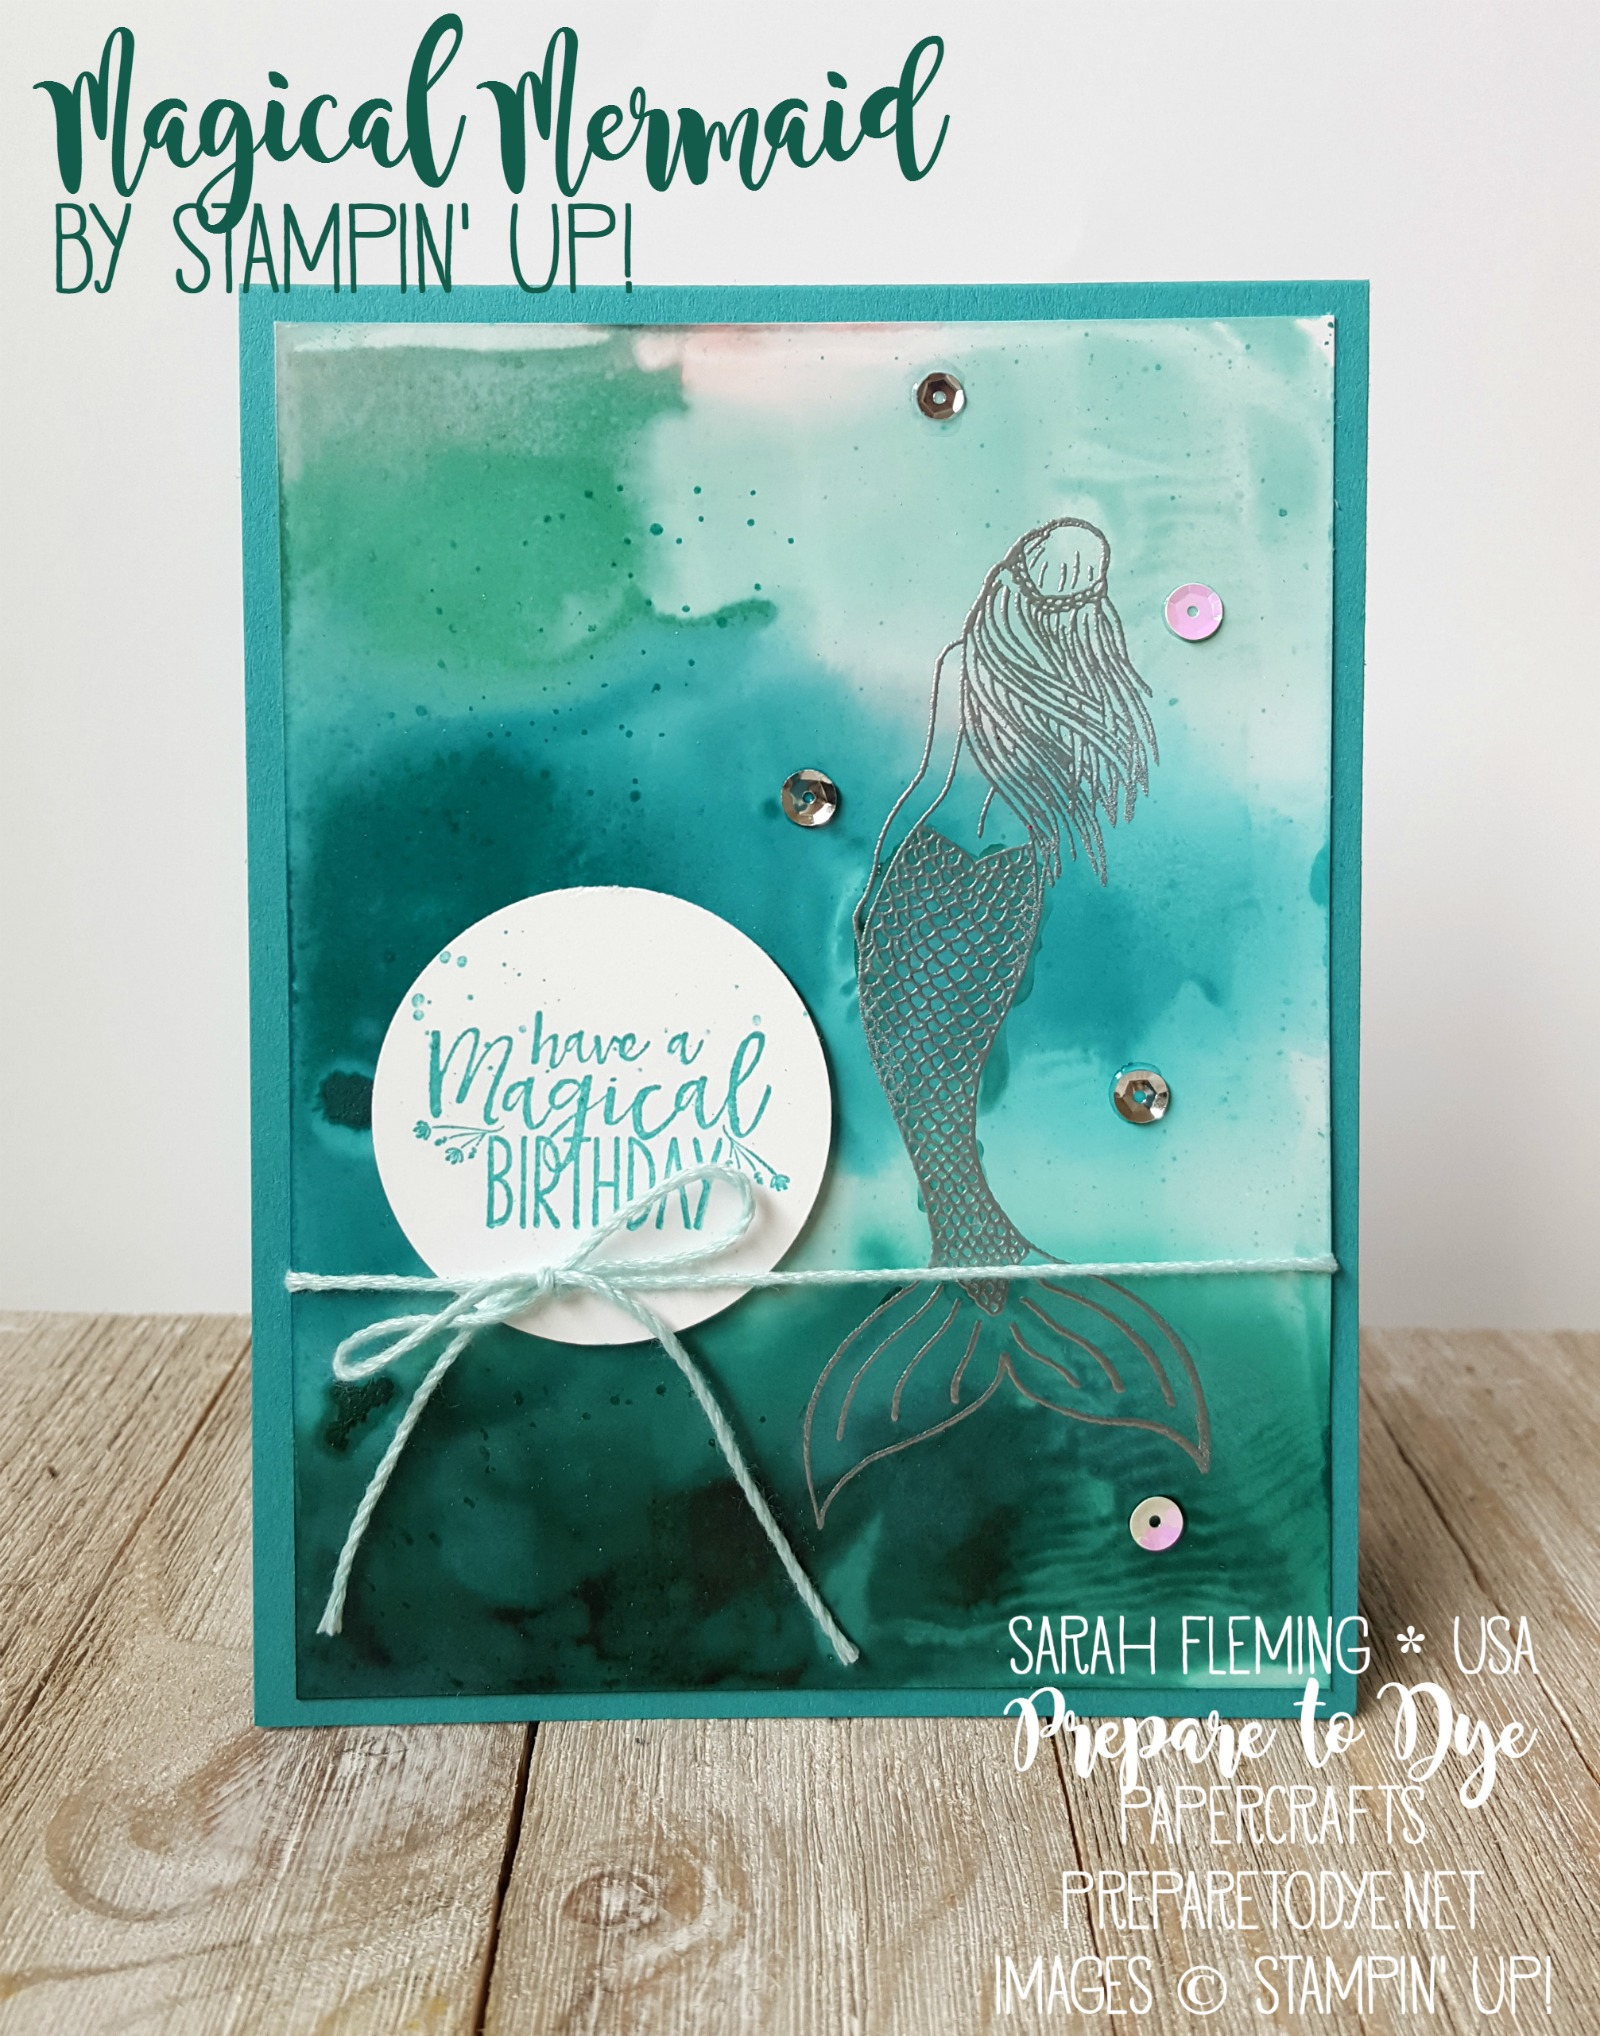 Stampin' Up! Magical Mermaid with glossy cardstock - Ink Spray & Smash background technique - handmade birthday card - Sarah Fleming - Prepare to Dye Papercrafts